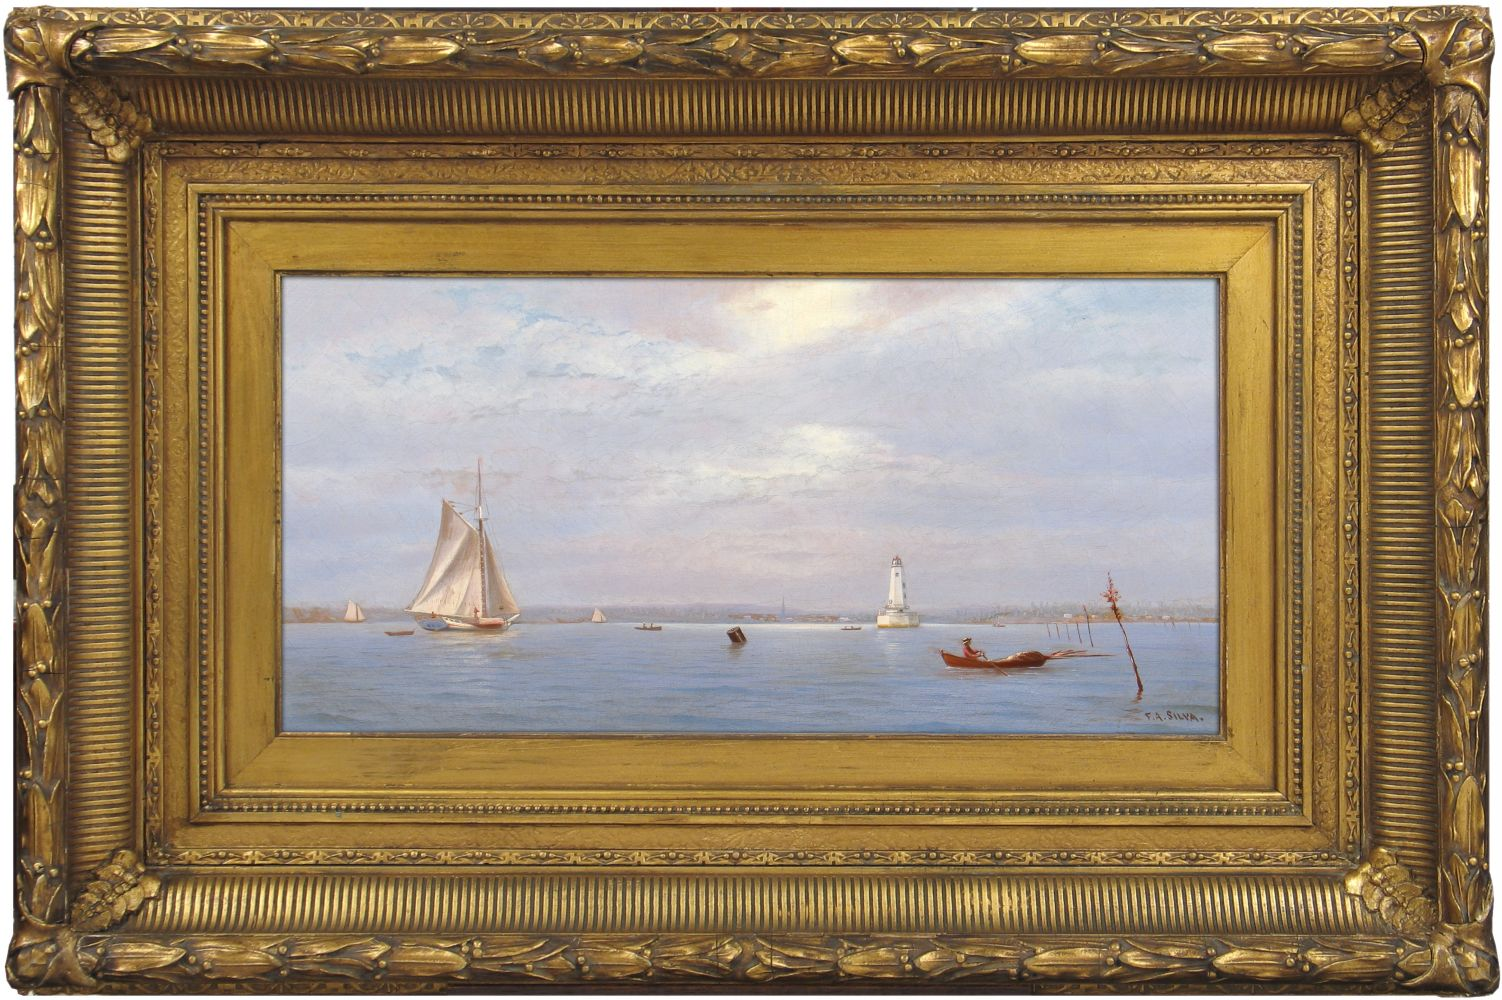 Francis Augustus Silva (1835–1886), Robbin's Reef Lighthouse off Tompkinsville, New York Harbor, c. 1880, oil on canvas, 9 x 18 in., signed lower right: F. A. Silva. (framed)